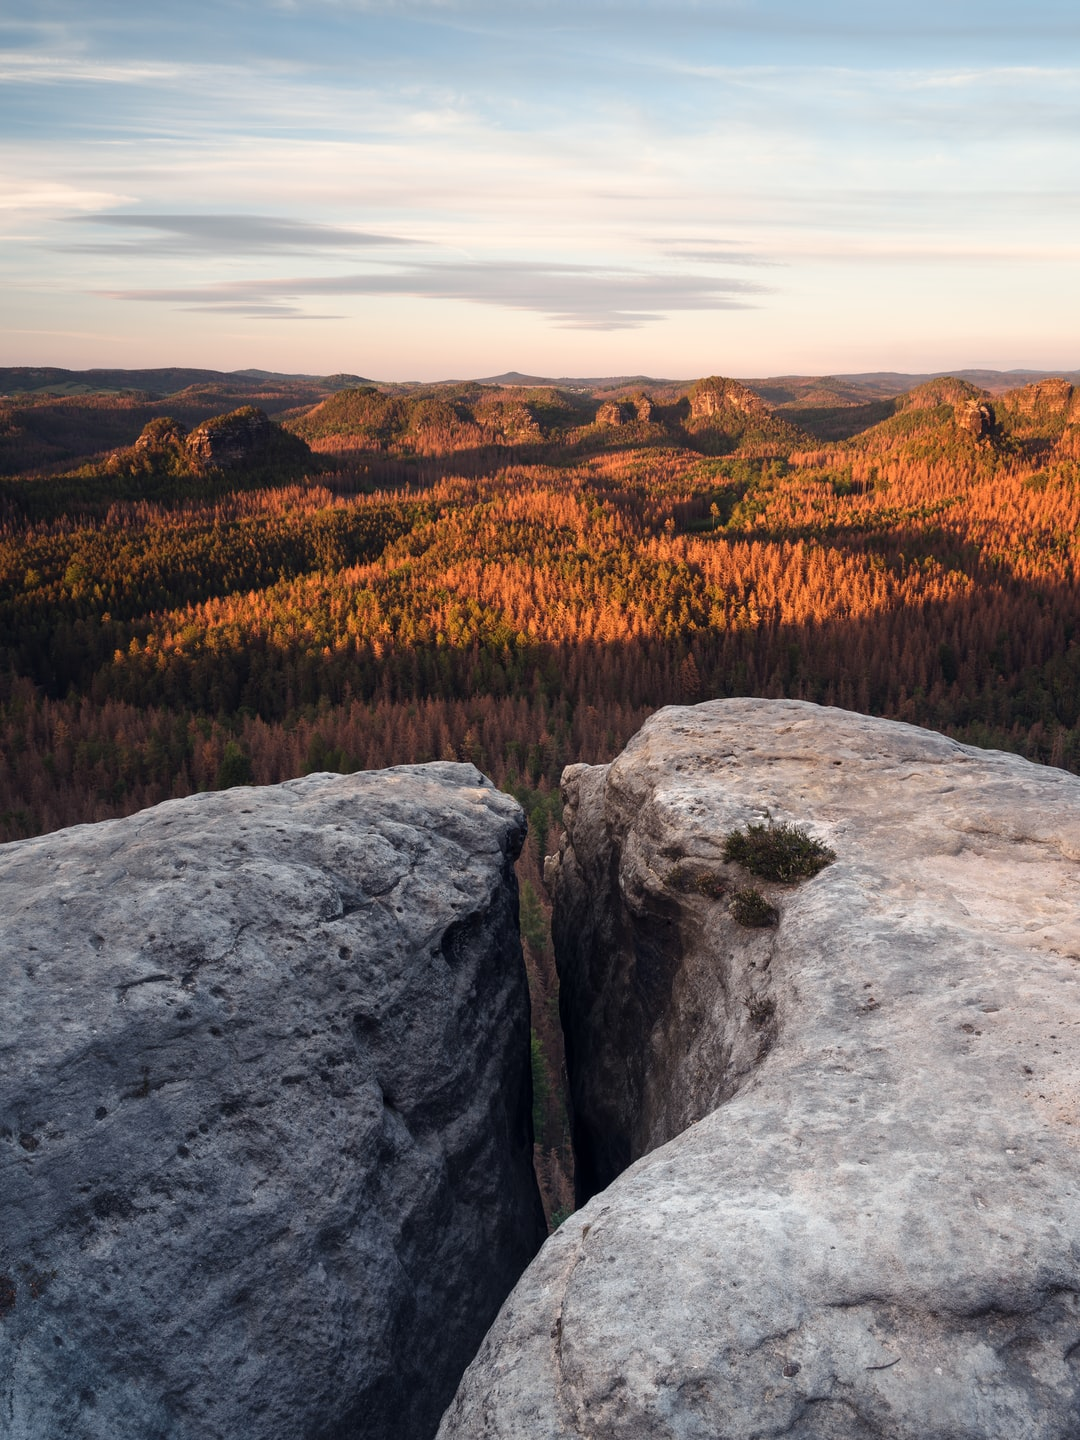 Saxonian Switzerland during the Golden Hour, captured from the viewpoint of Kleiner Winterberg. May 2020. Visit my website: nilsleonhardt.com